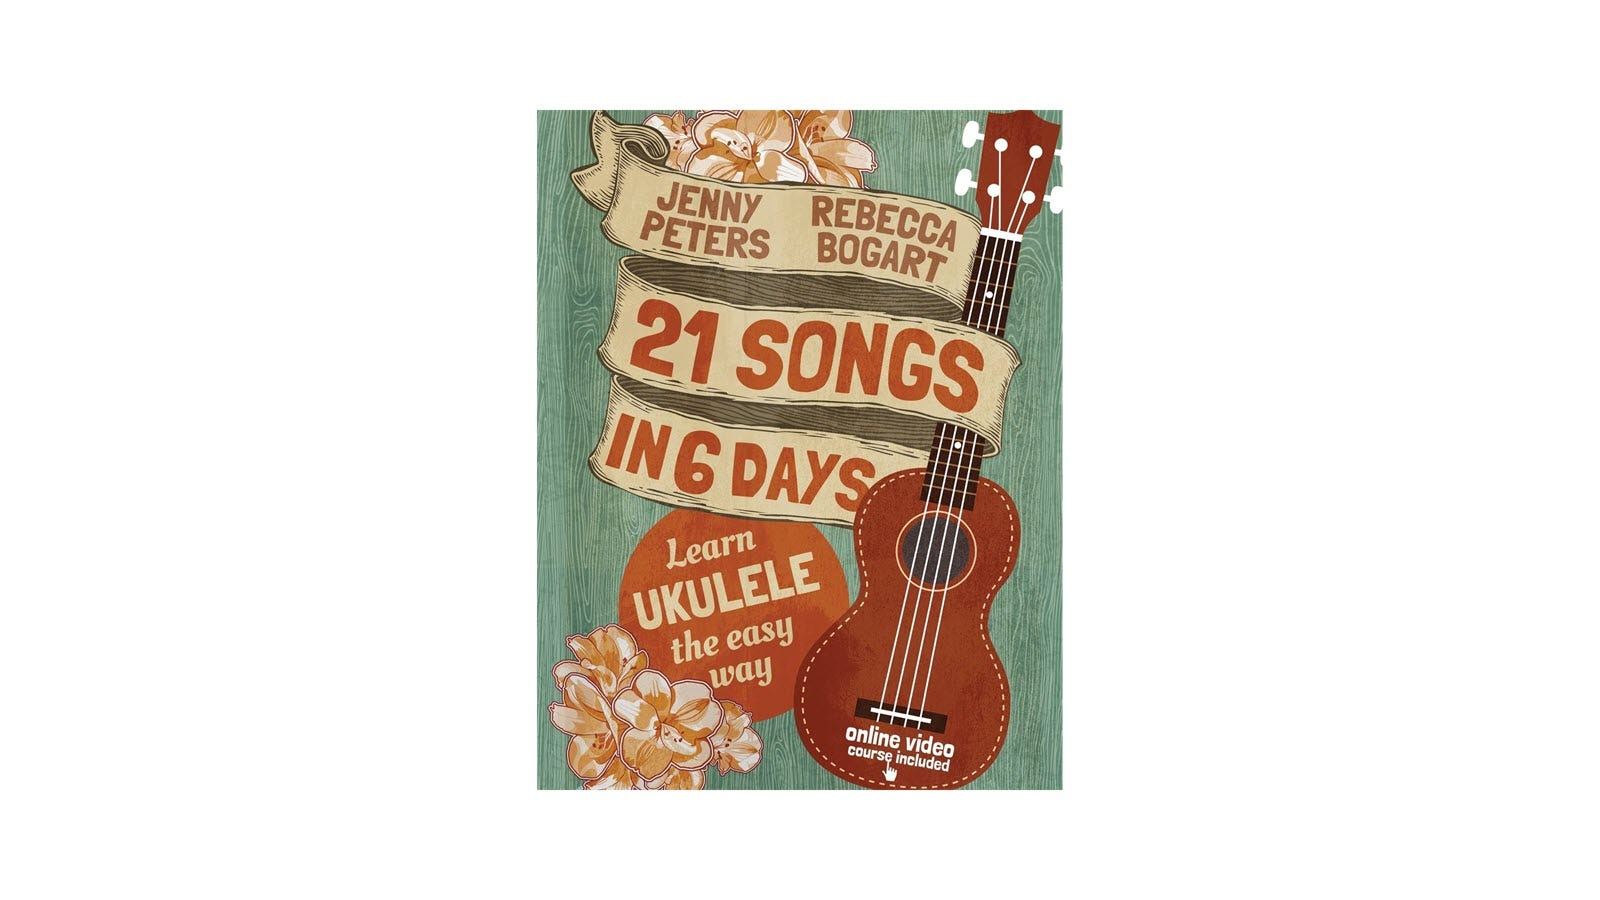 """A book entitled """"21 Songs in 6 Days, Learn Ukulele the Easy way"""" with an artistic rendering of a Ukulele."""